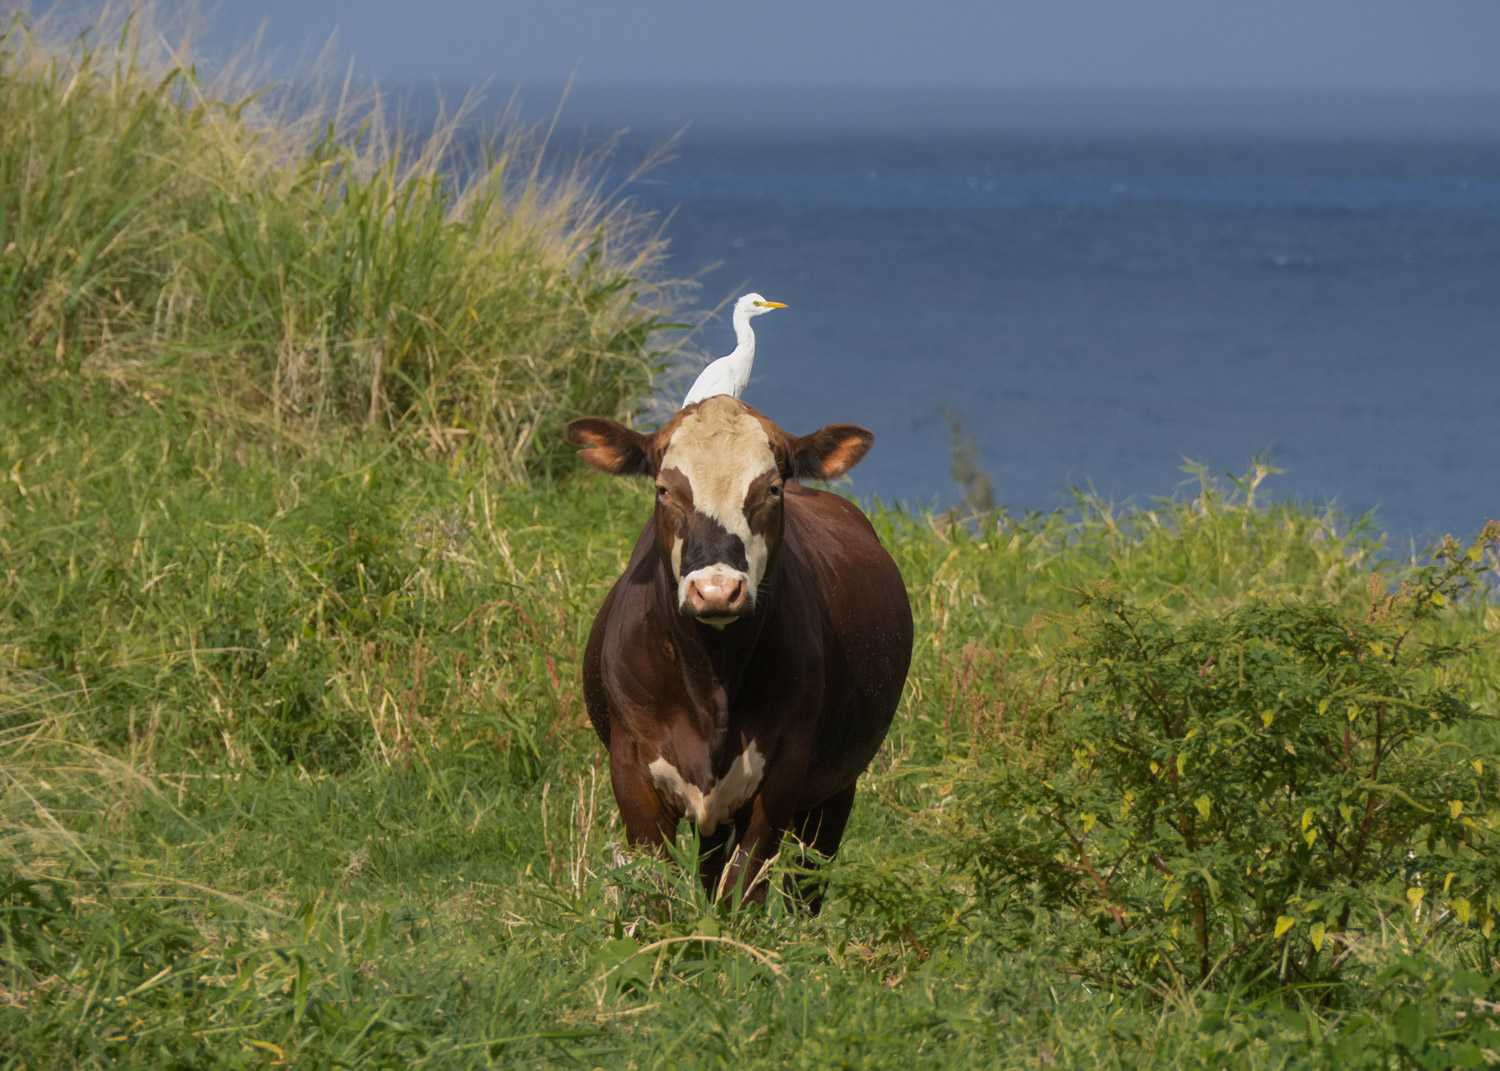 Cow and egret.